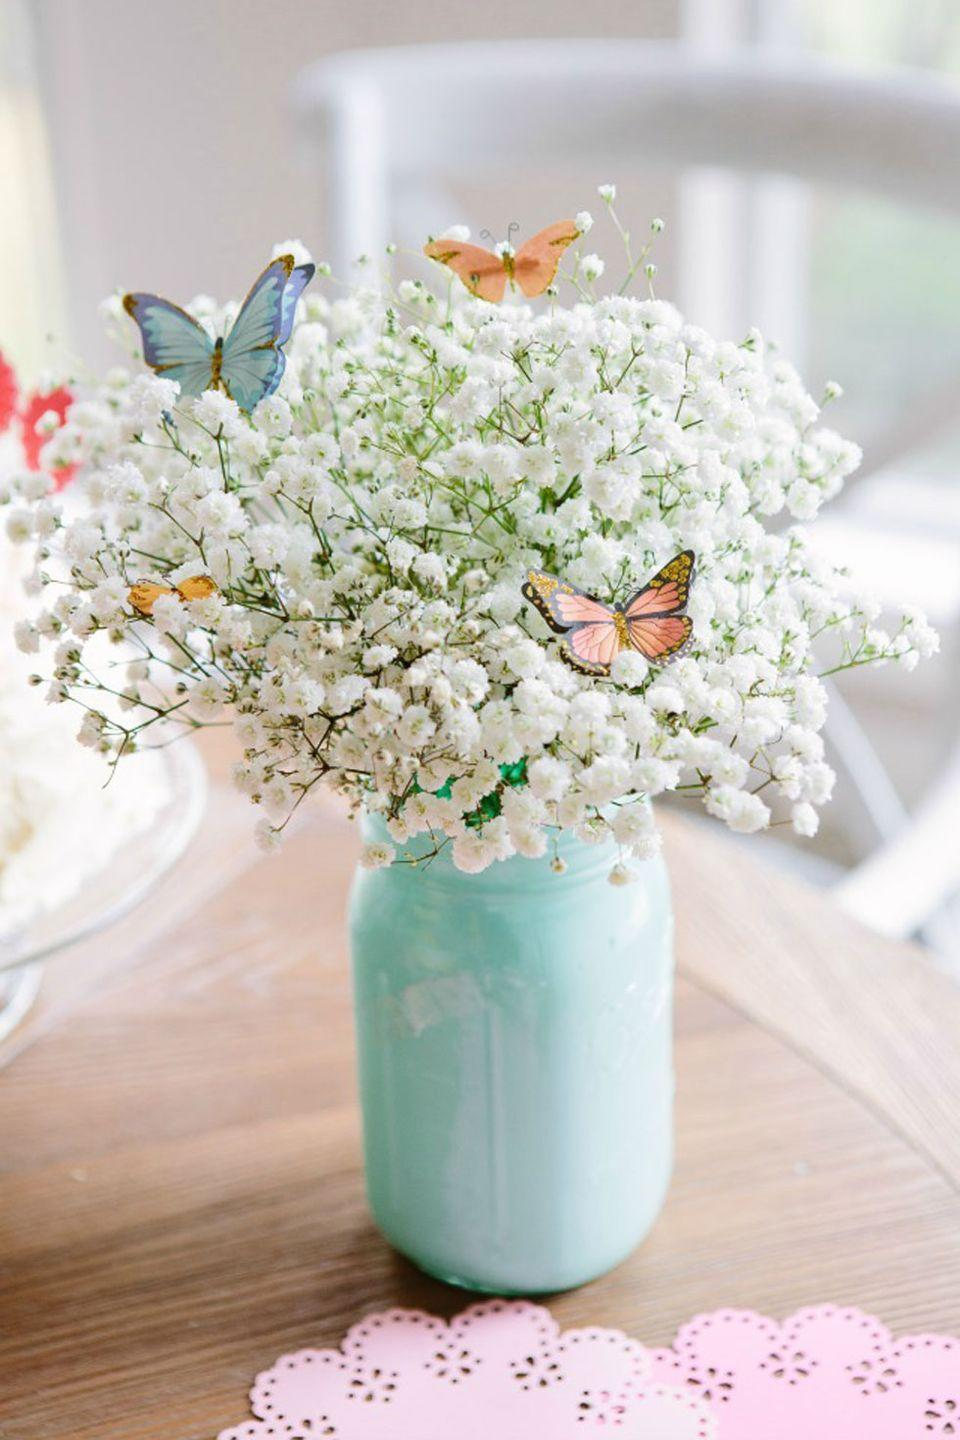 "<p>Paint a collection of <a href=""https://www.countryliving.com/diy-crafts/g2264/spring-mason-jars/"" rel=""nofollow noopener"" target=""_blank"" data-ylk=""slk:Mason jars"" class=""link rapid-noclick-resp"">Mason jars</a> in cheerful pastel shades to use as centerpiece vases all spring long.</p><p><strong>Get the tutorial at <a href=""http://www.designimprovised.com/2014/04/mothers-day-brunch.html"" rel=""nofollow noopener"" target=""_blank"" data-ylk=""slk:Design Improvised"" class=""link rapid-noclick-resp"">Design Improvised</a>.</strong></p><p><a class=""link rapid-noclick-resp"" href=""https://www.amazon.com/Ball-Regular-32-Ounces-2-Units-Pack/dp/B01N6QBJG0/ref=sr_1_8?tag=syn-yahoo-20&ascsubtag=%5Bartid%7C10050.g.1652%5Bsrc%7Cyahoo-us"" rel=""nofollow noopener"" target=""_blank"" data-ylk=""slk:SHOP MASON JARS"">SHOP MASON JARS</a></p>"